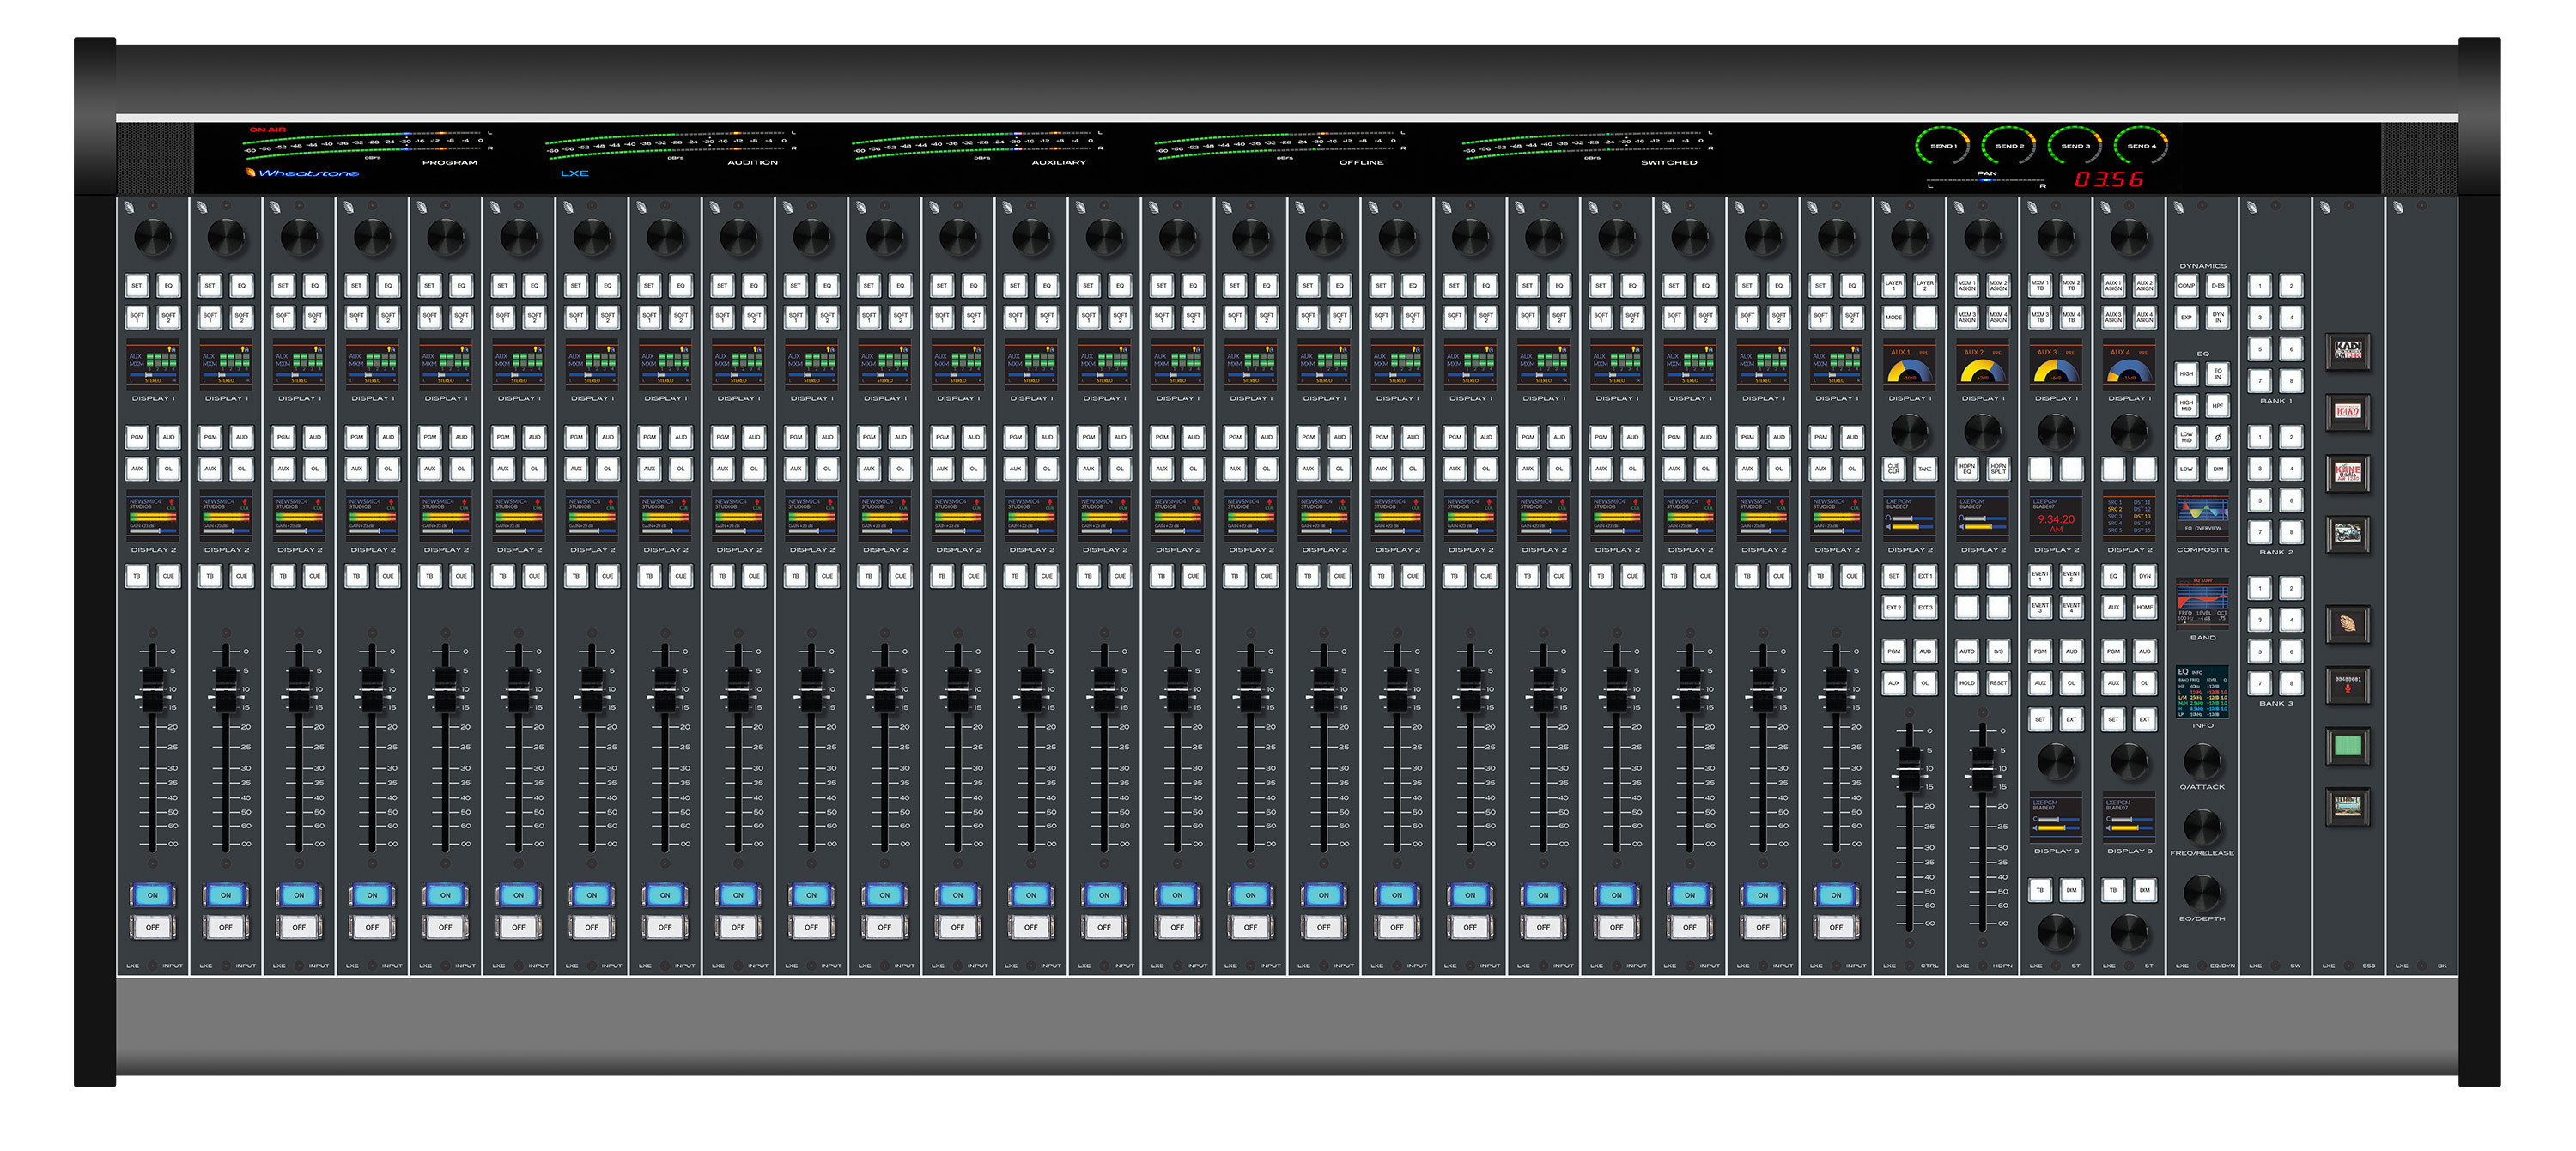 WHEATSTONE INTRODUCES CONFIGURABLE IP AUDIO CONSOLE AT NAB